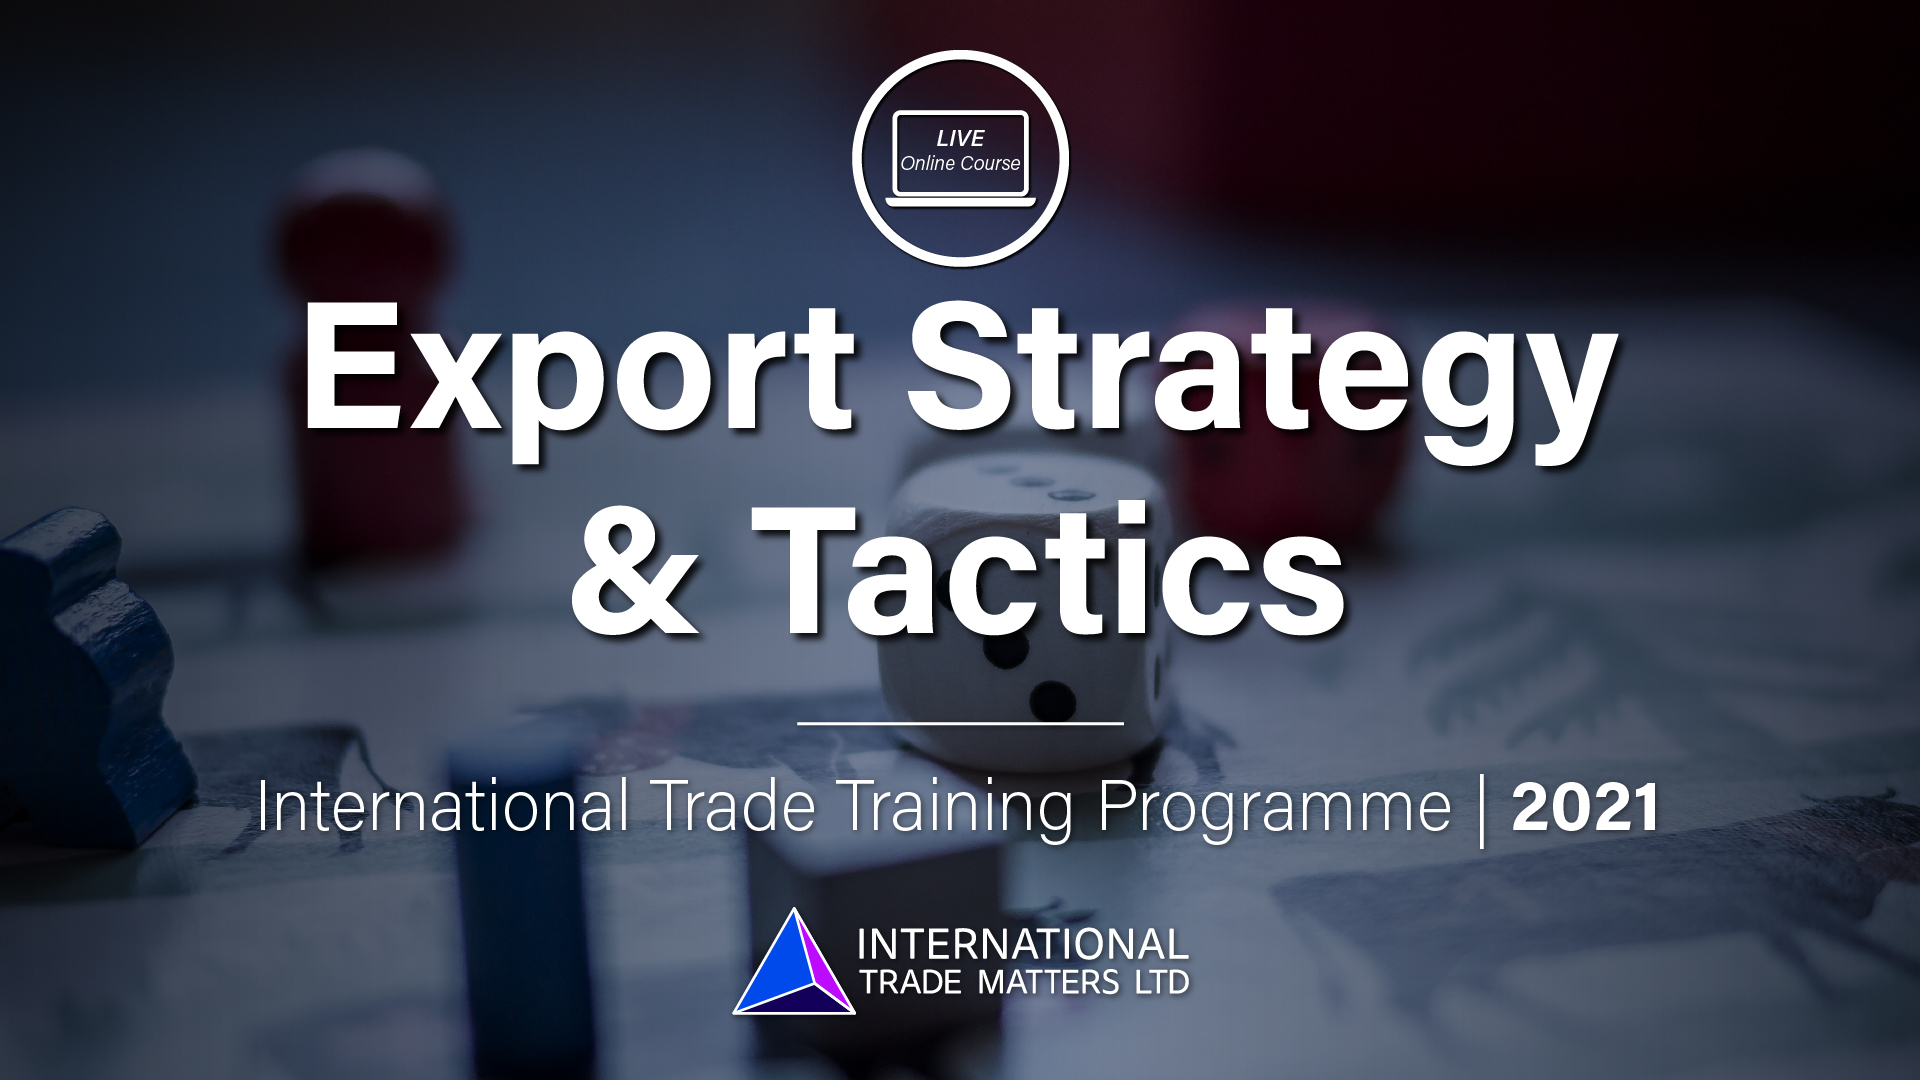 Export Strategy & Tactics - An Online Course